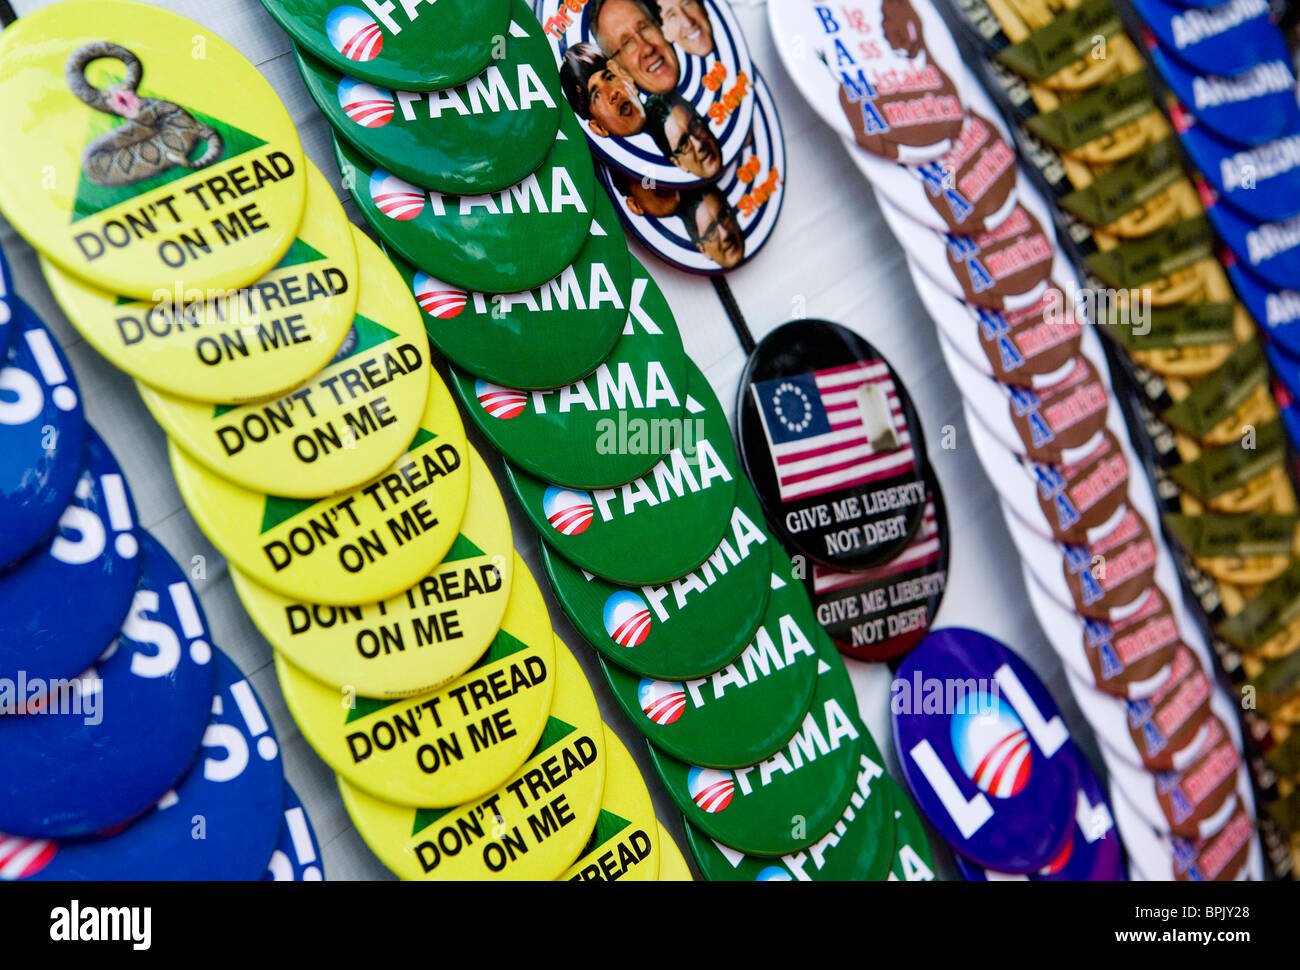 Tea Party Anti President Obama and Anti-Democrat buttons.  - Stock Image